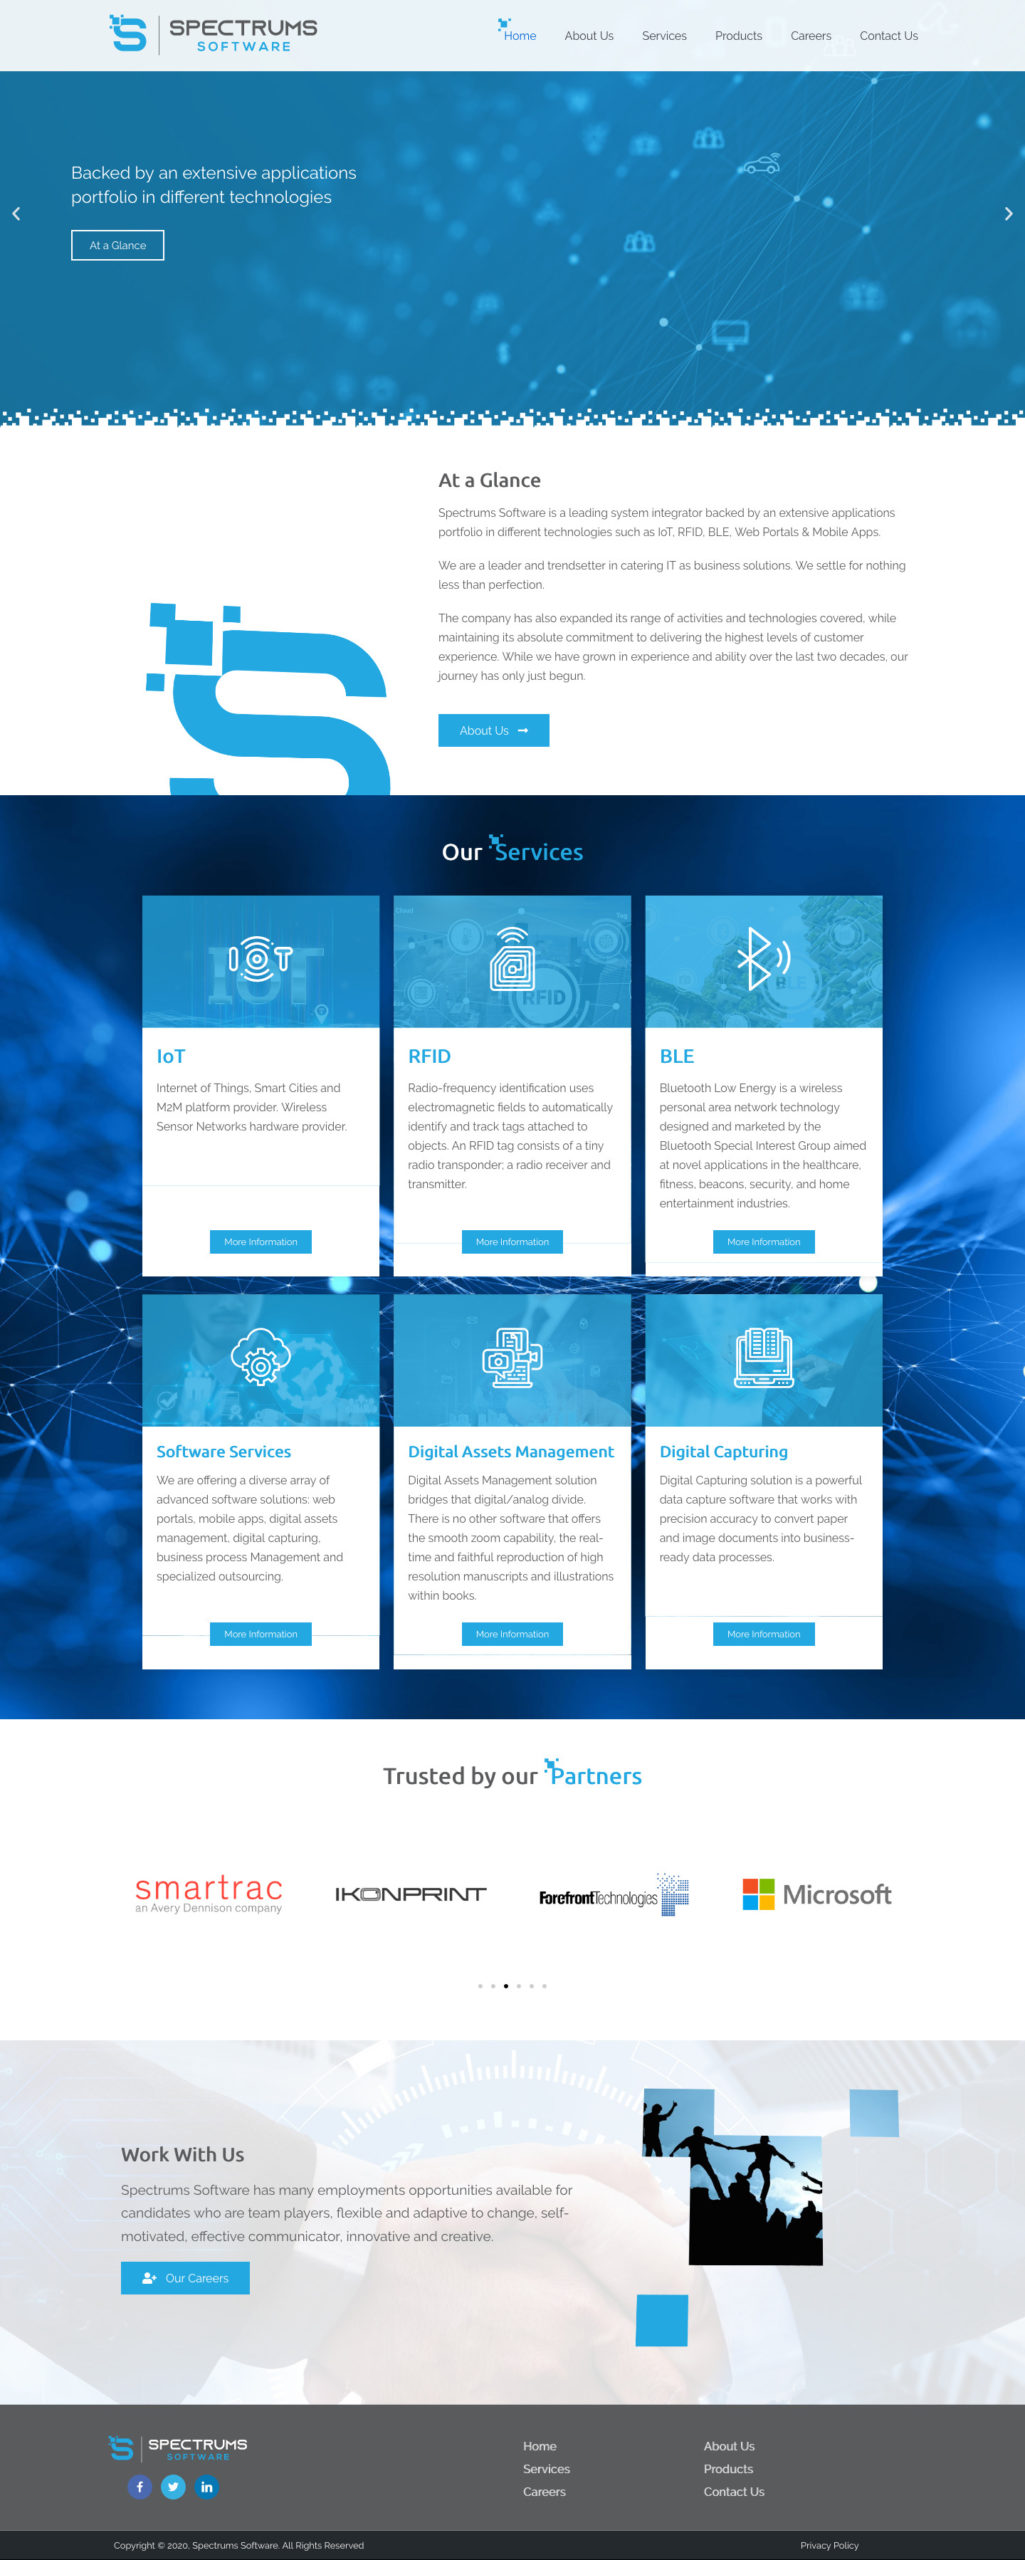 Spectrums webdesign and development of wp-cube